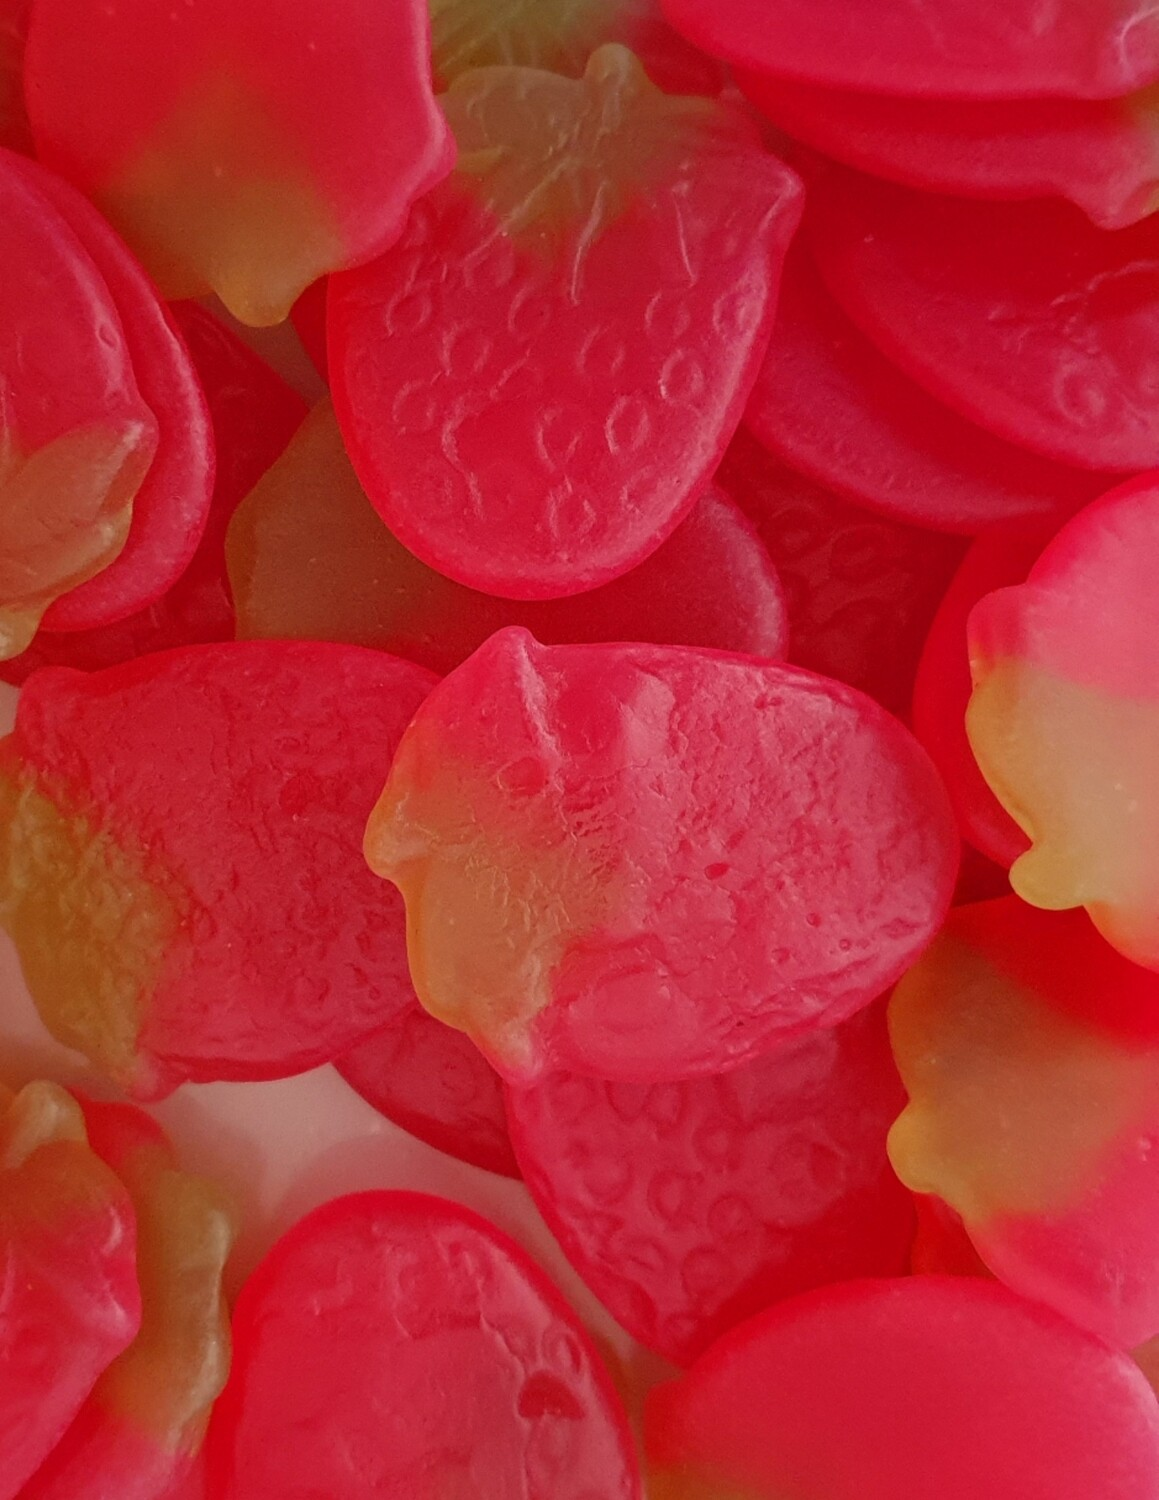 Giant Strawberries (Strawberry Flavoured Jelly Sweets)